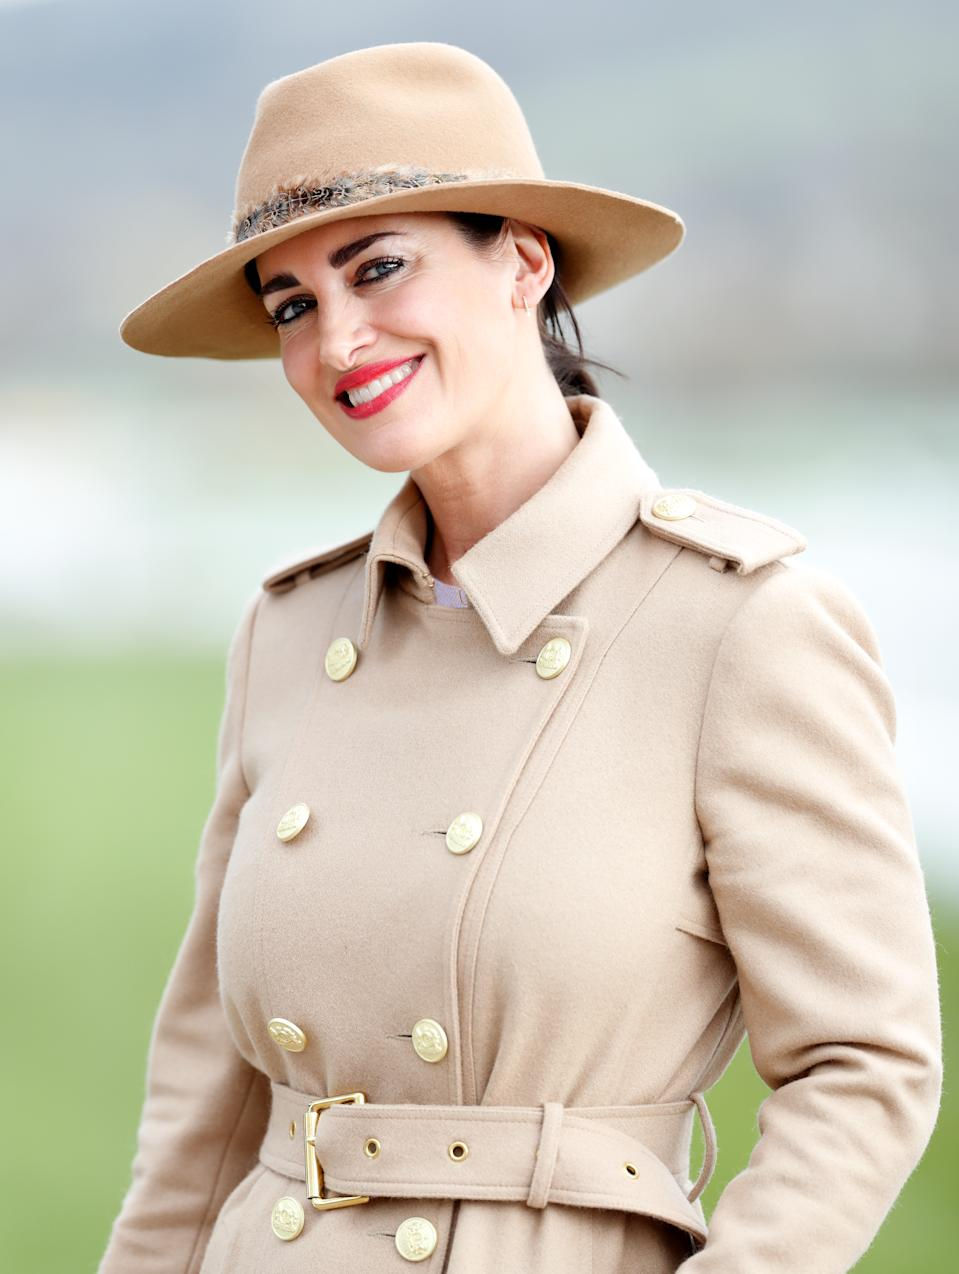 Kirsty Gallacher attends day 4 'Gold Cup Day' of the Cheltenham Festival 2020 at Cheltenham Racecourse on March 13, 2020 in Cheltenham, England. (Photo by Max Mumby/Indigo/Getty Images),